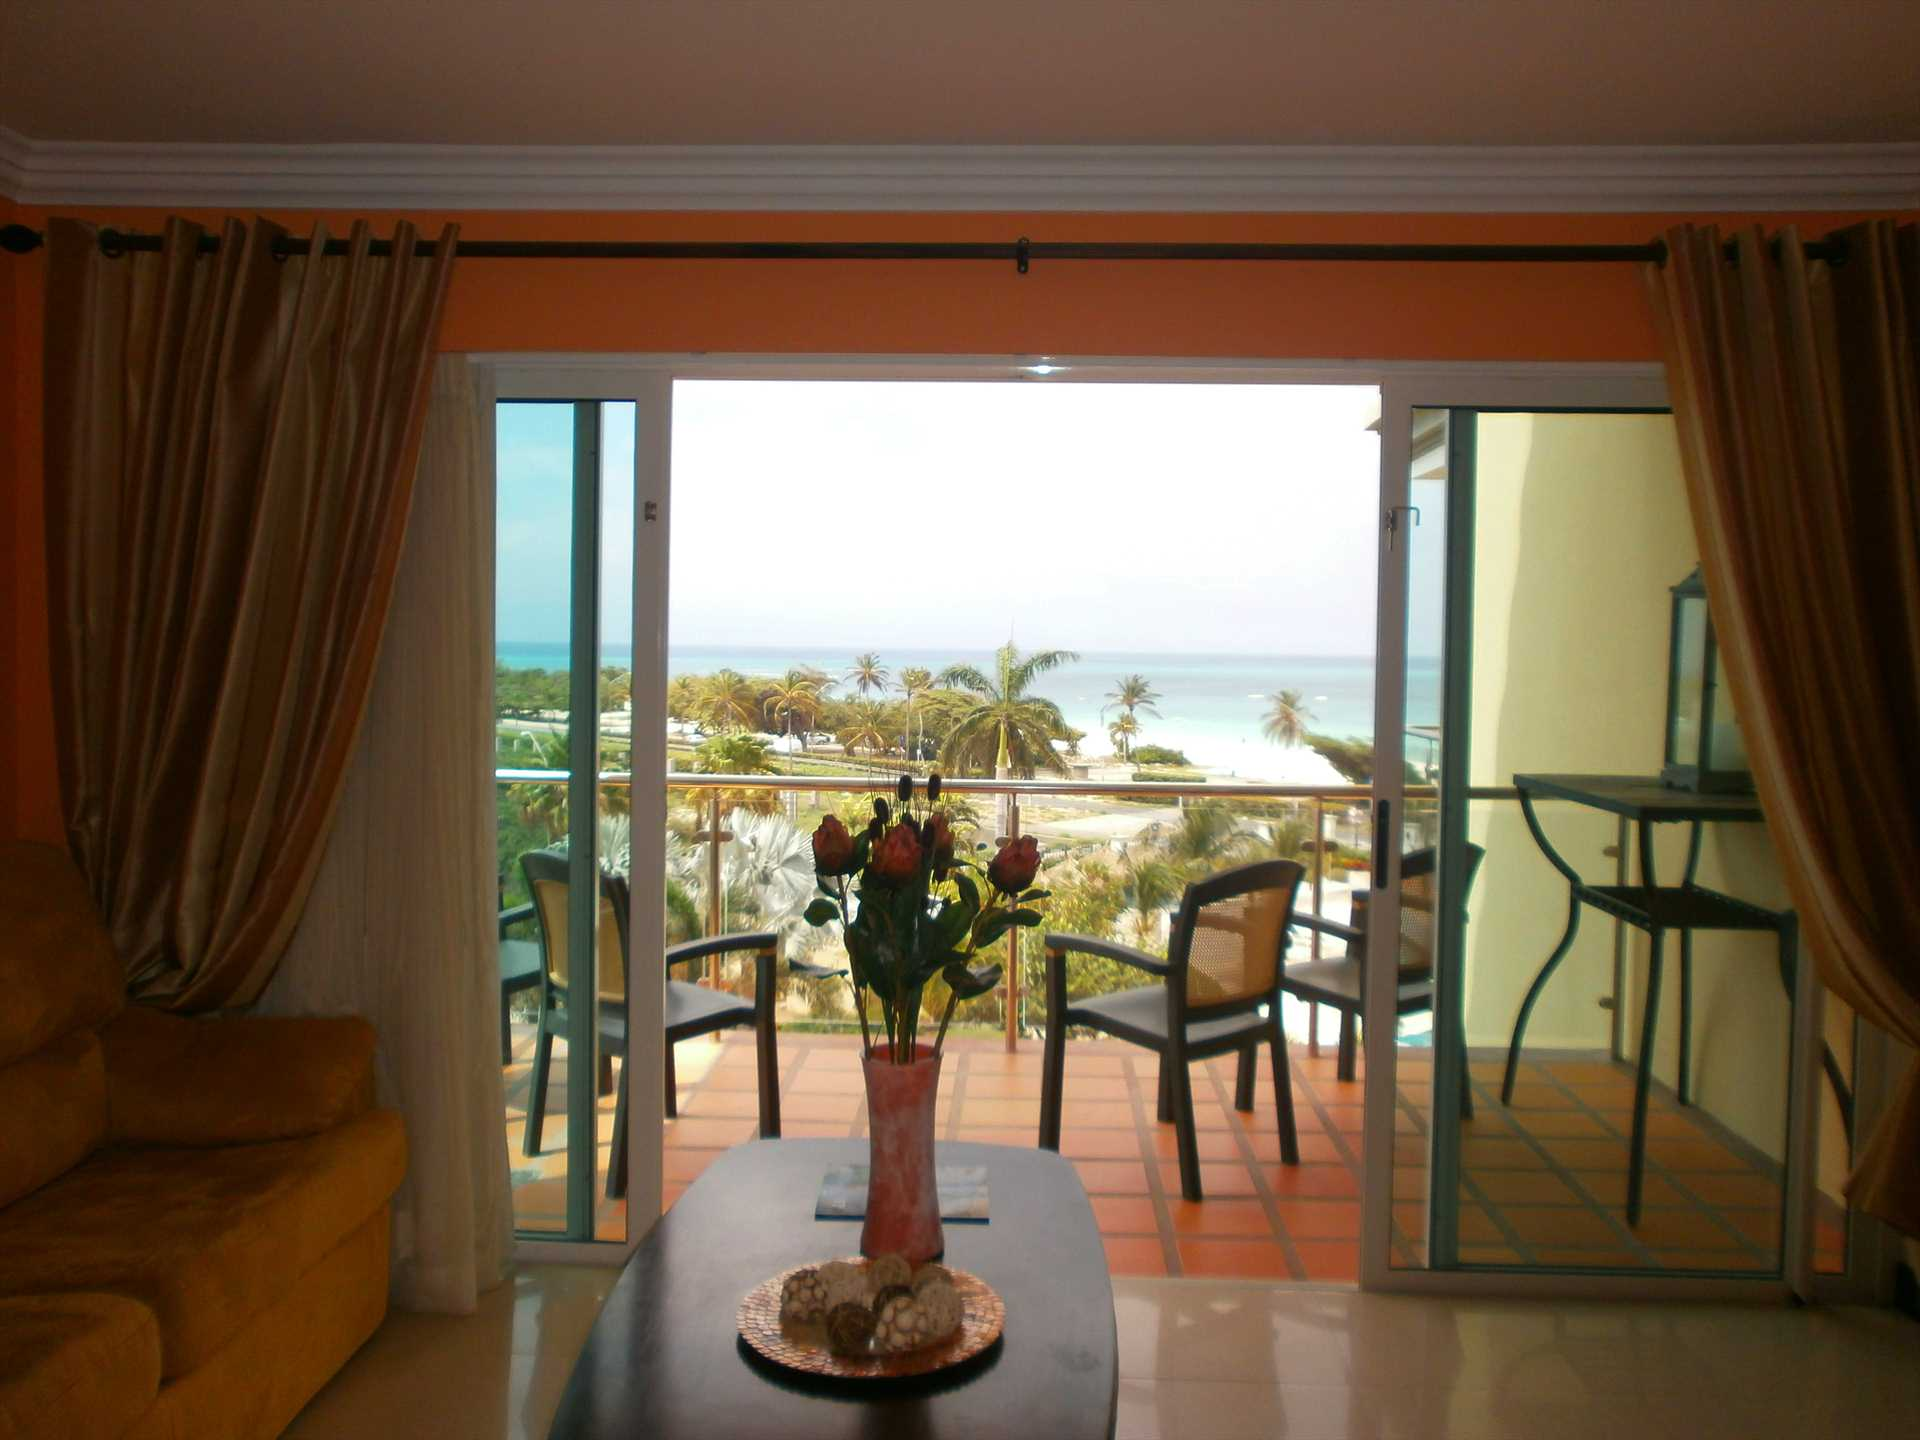 Savor the ocean view from your living room and balcony.